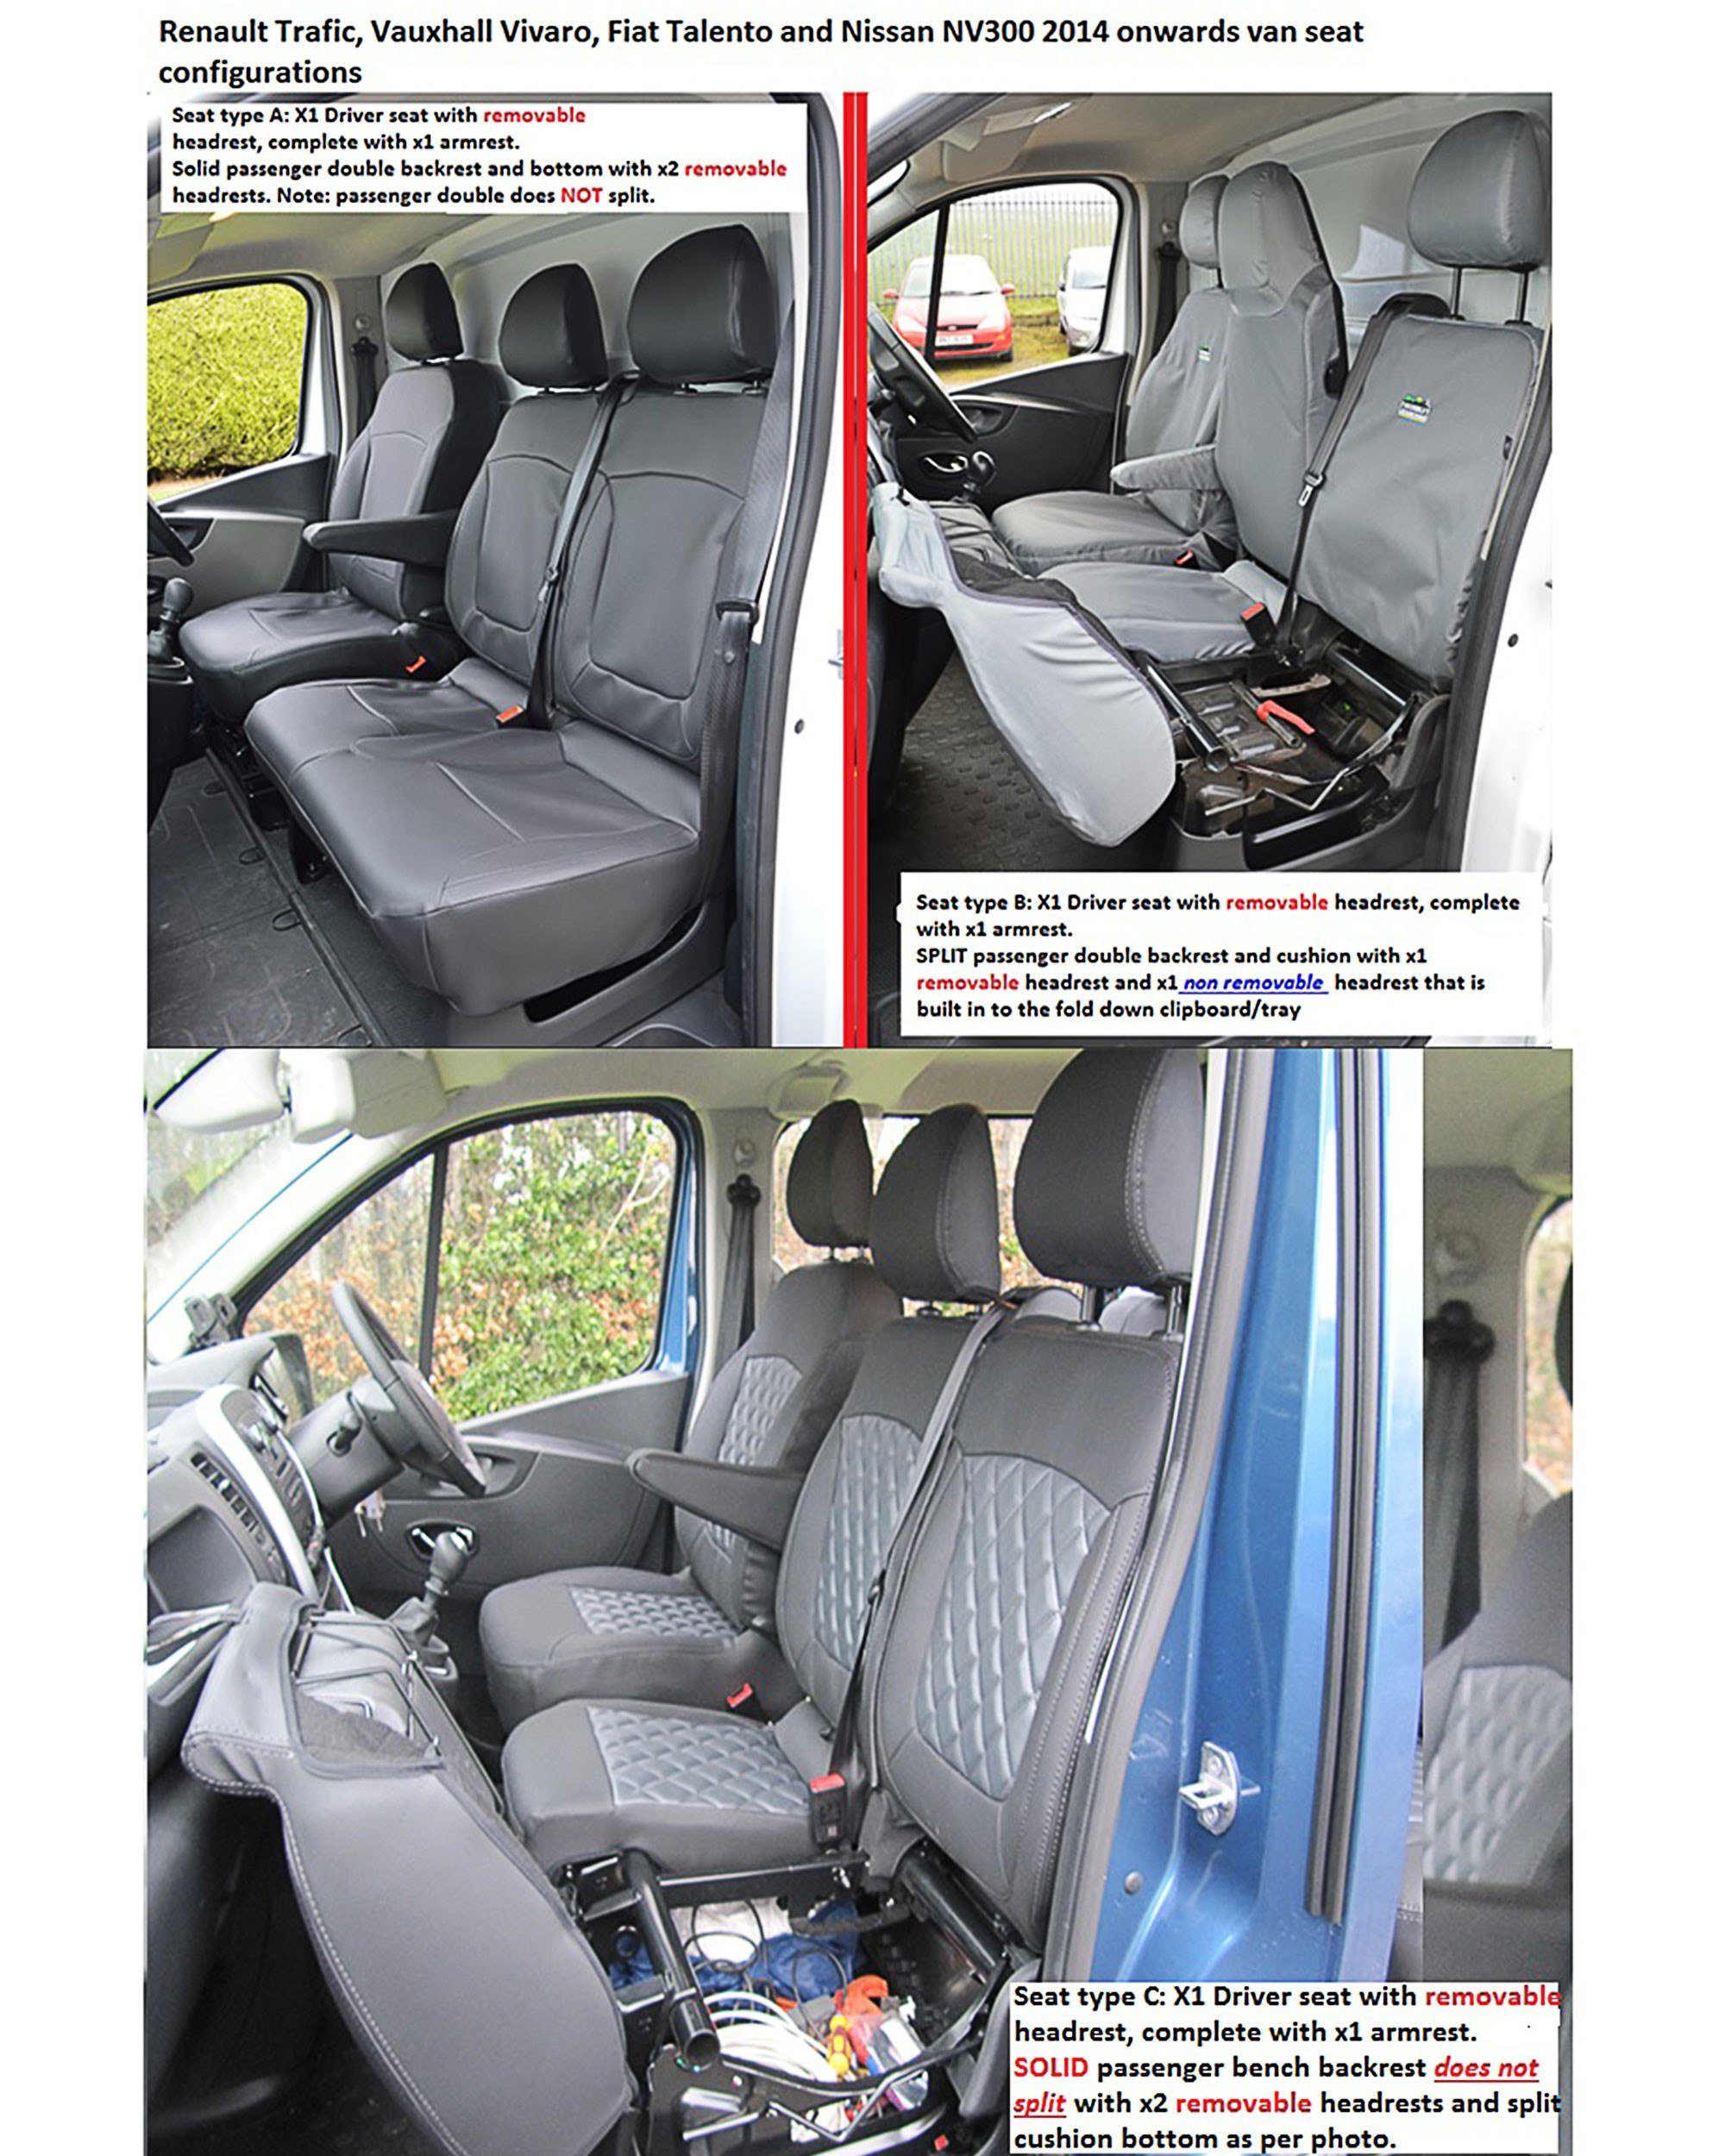 2+1 RED SINGLE /& DOUBLE COMFORT FABRIC SEAT /& ARMREST COVERS FOR RENAULT TRAFIC